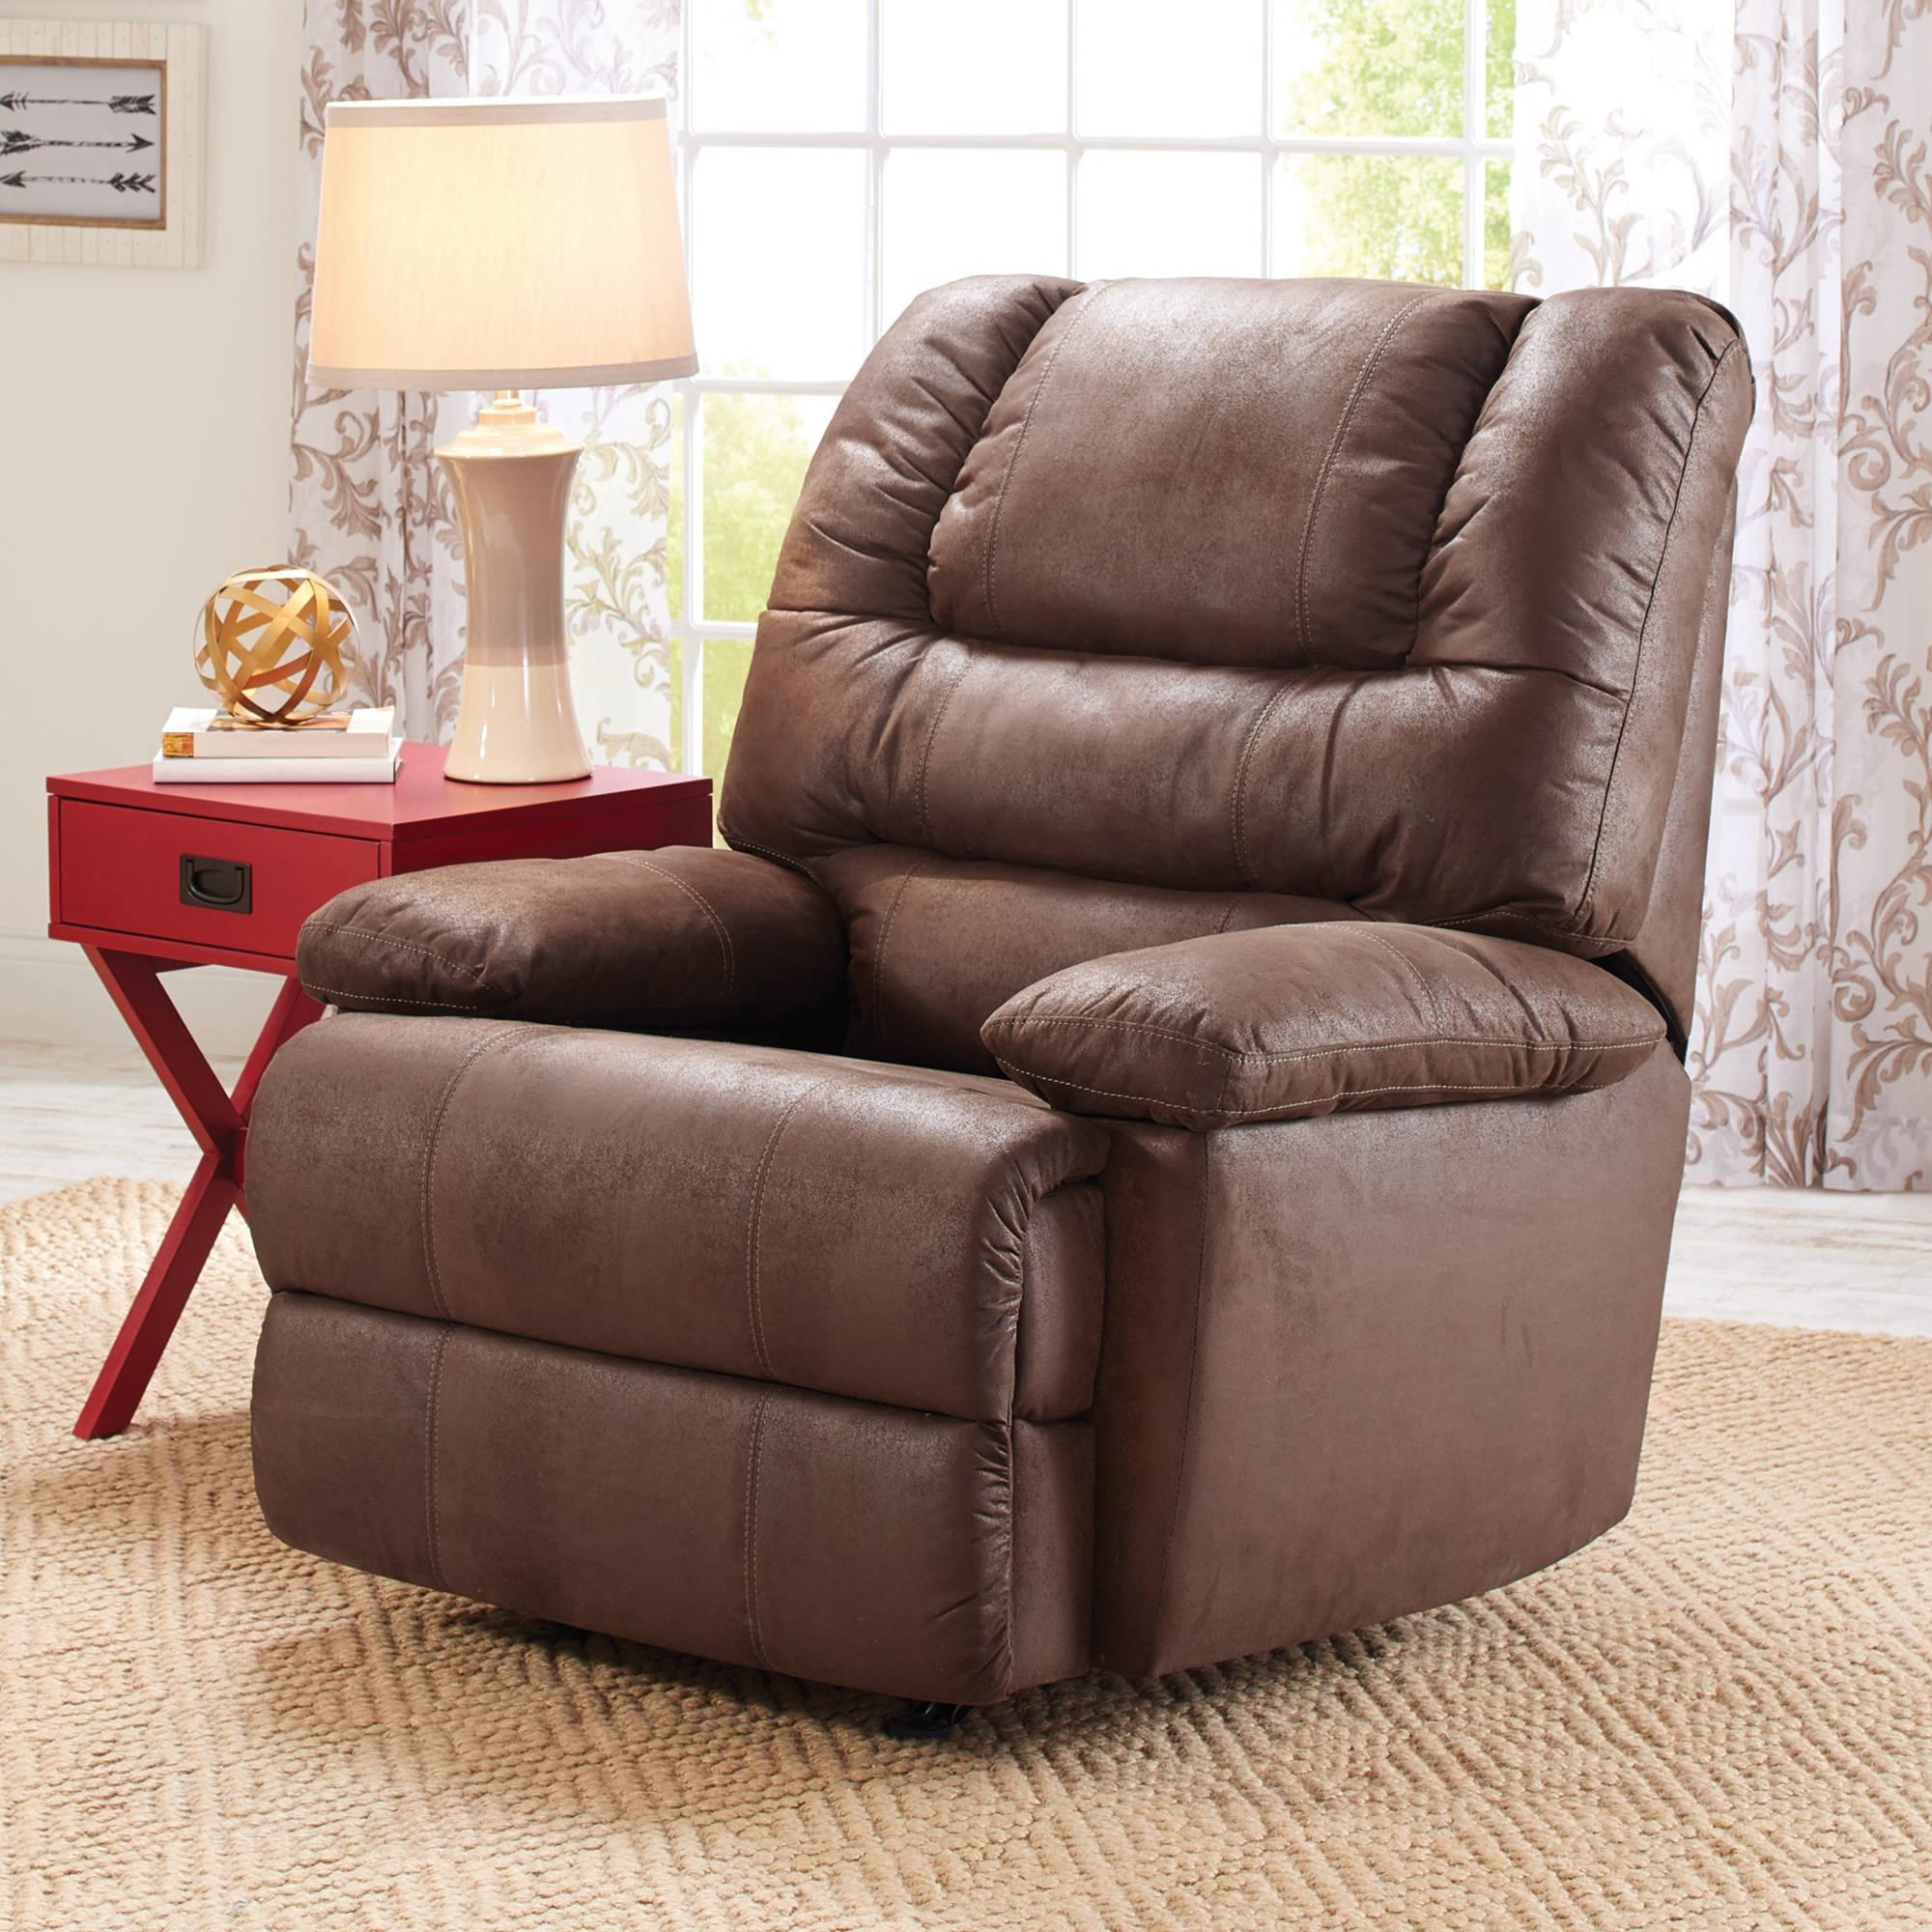 Furniture: Padded Angle Arm And Fully Padded Chaise With Simmons Intended For Rocking Sofa Chairs (Image 7 of 20)